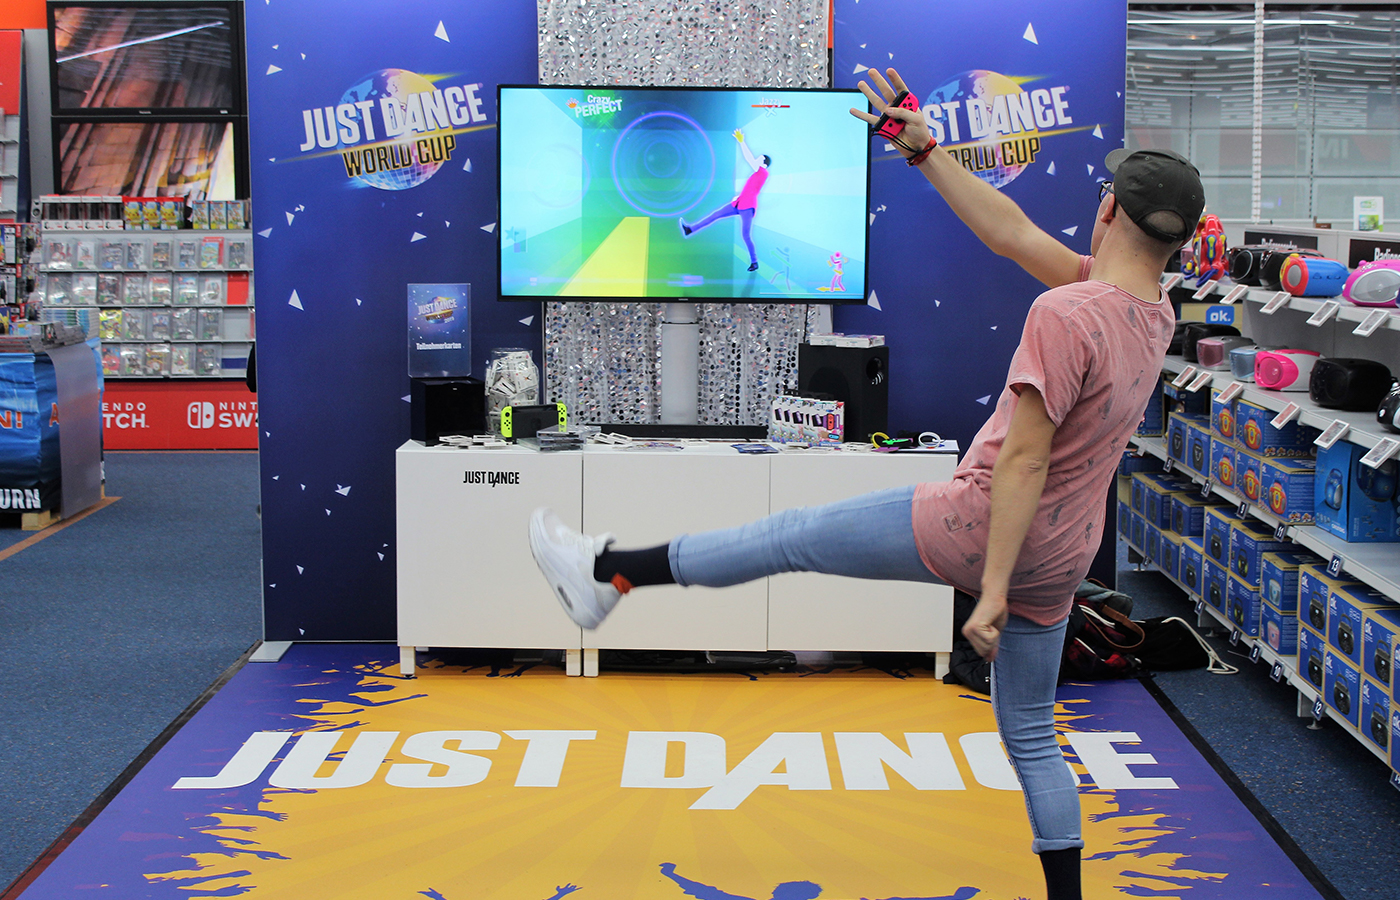 Ubisoft – Just Dance World Cup POS Tour